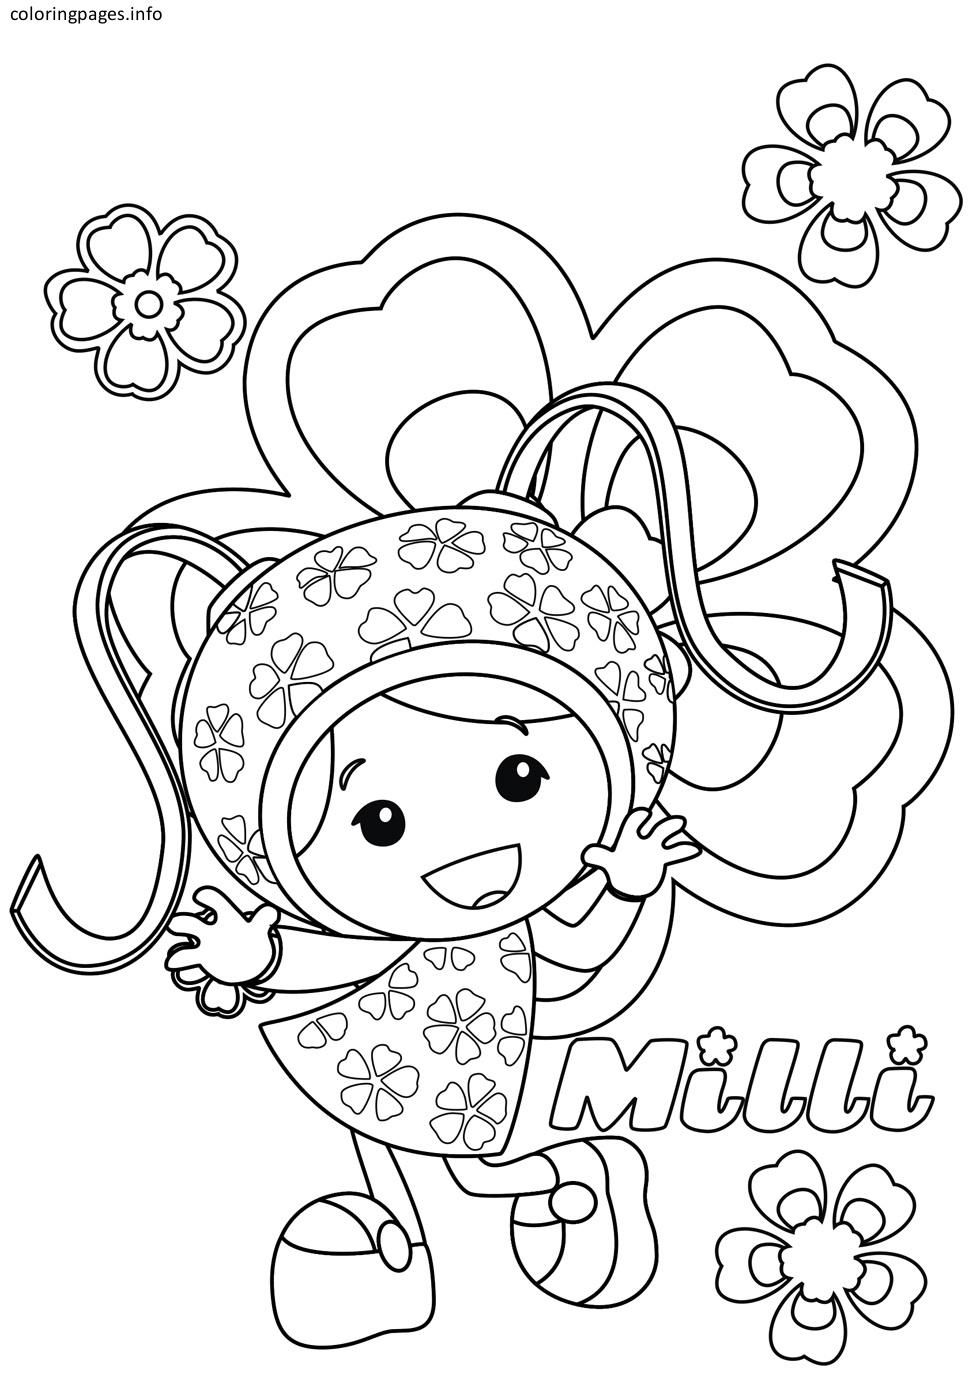 team umizoomi milli coloring pages | Coloring Pages | Pinterest